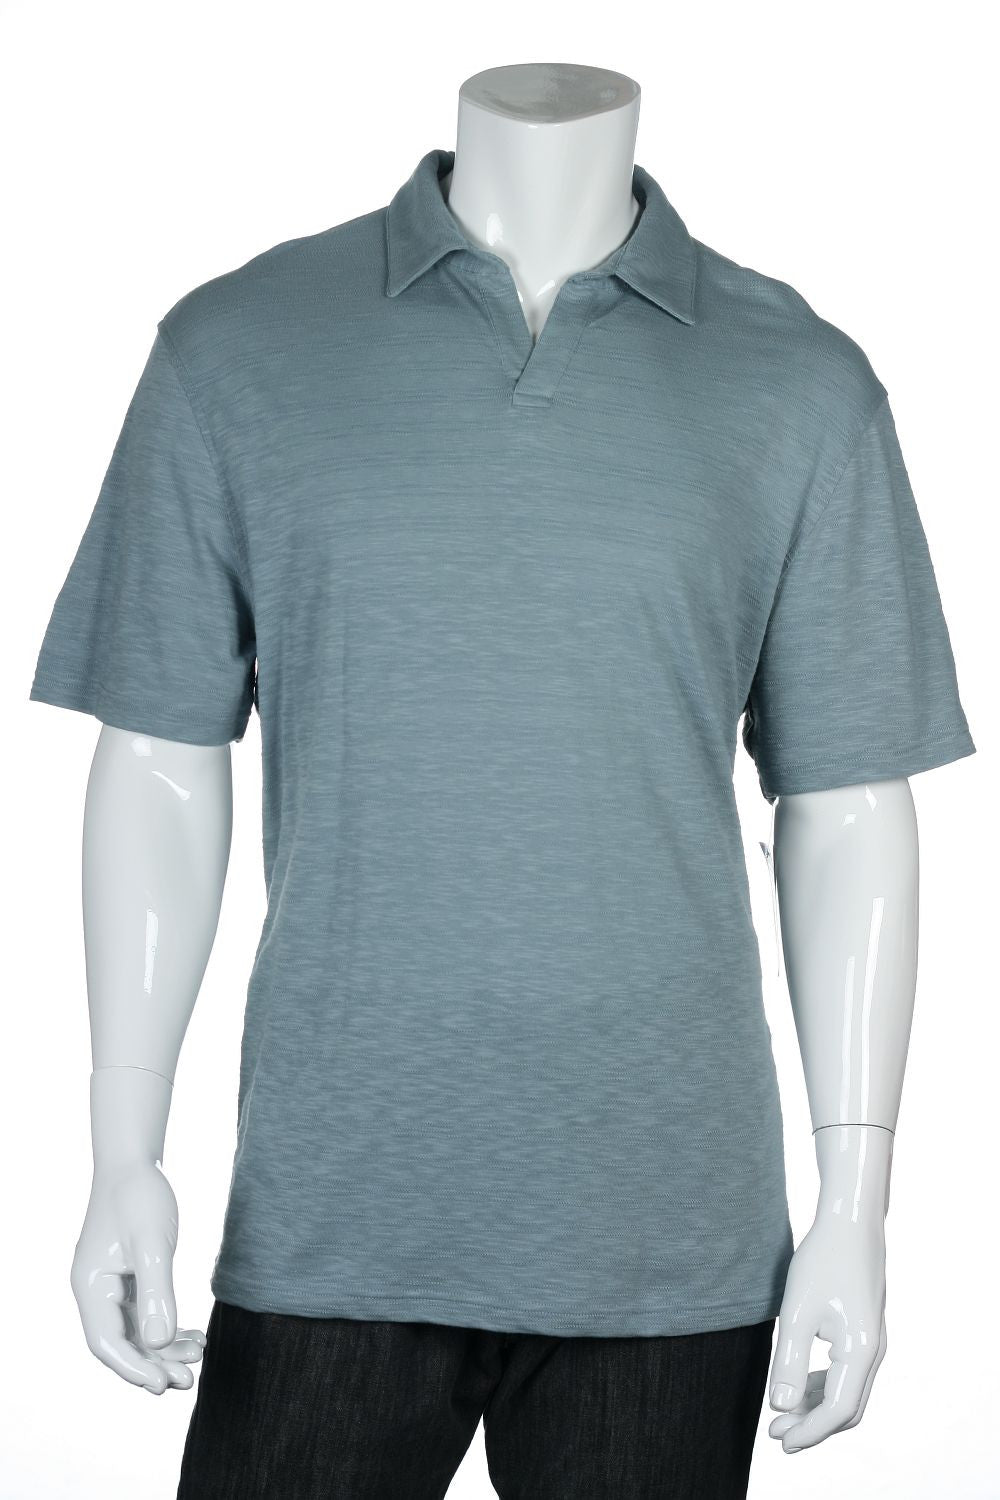 Alfani Mens Aqua Polo Shirt